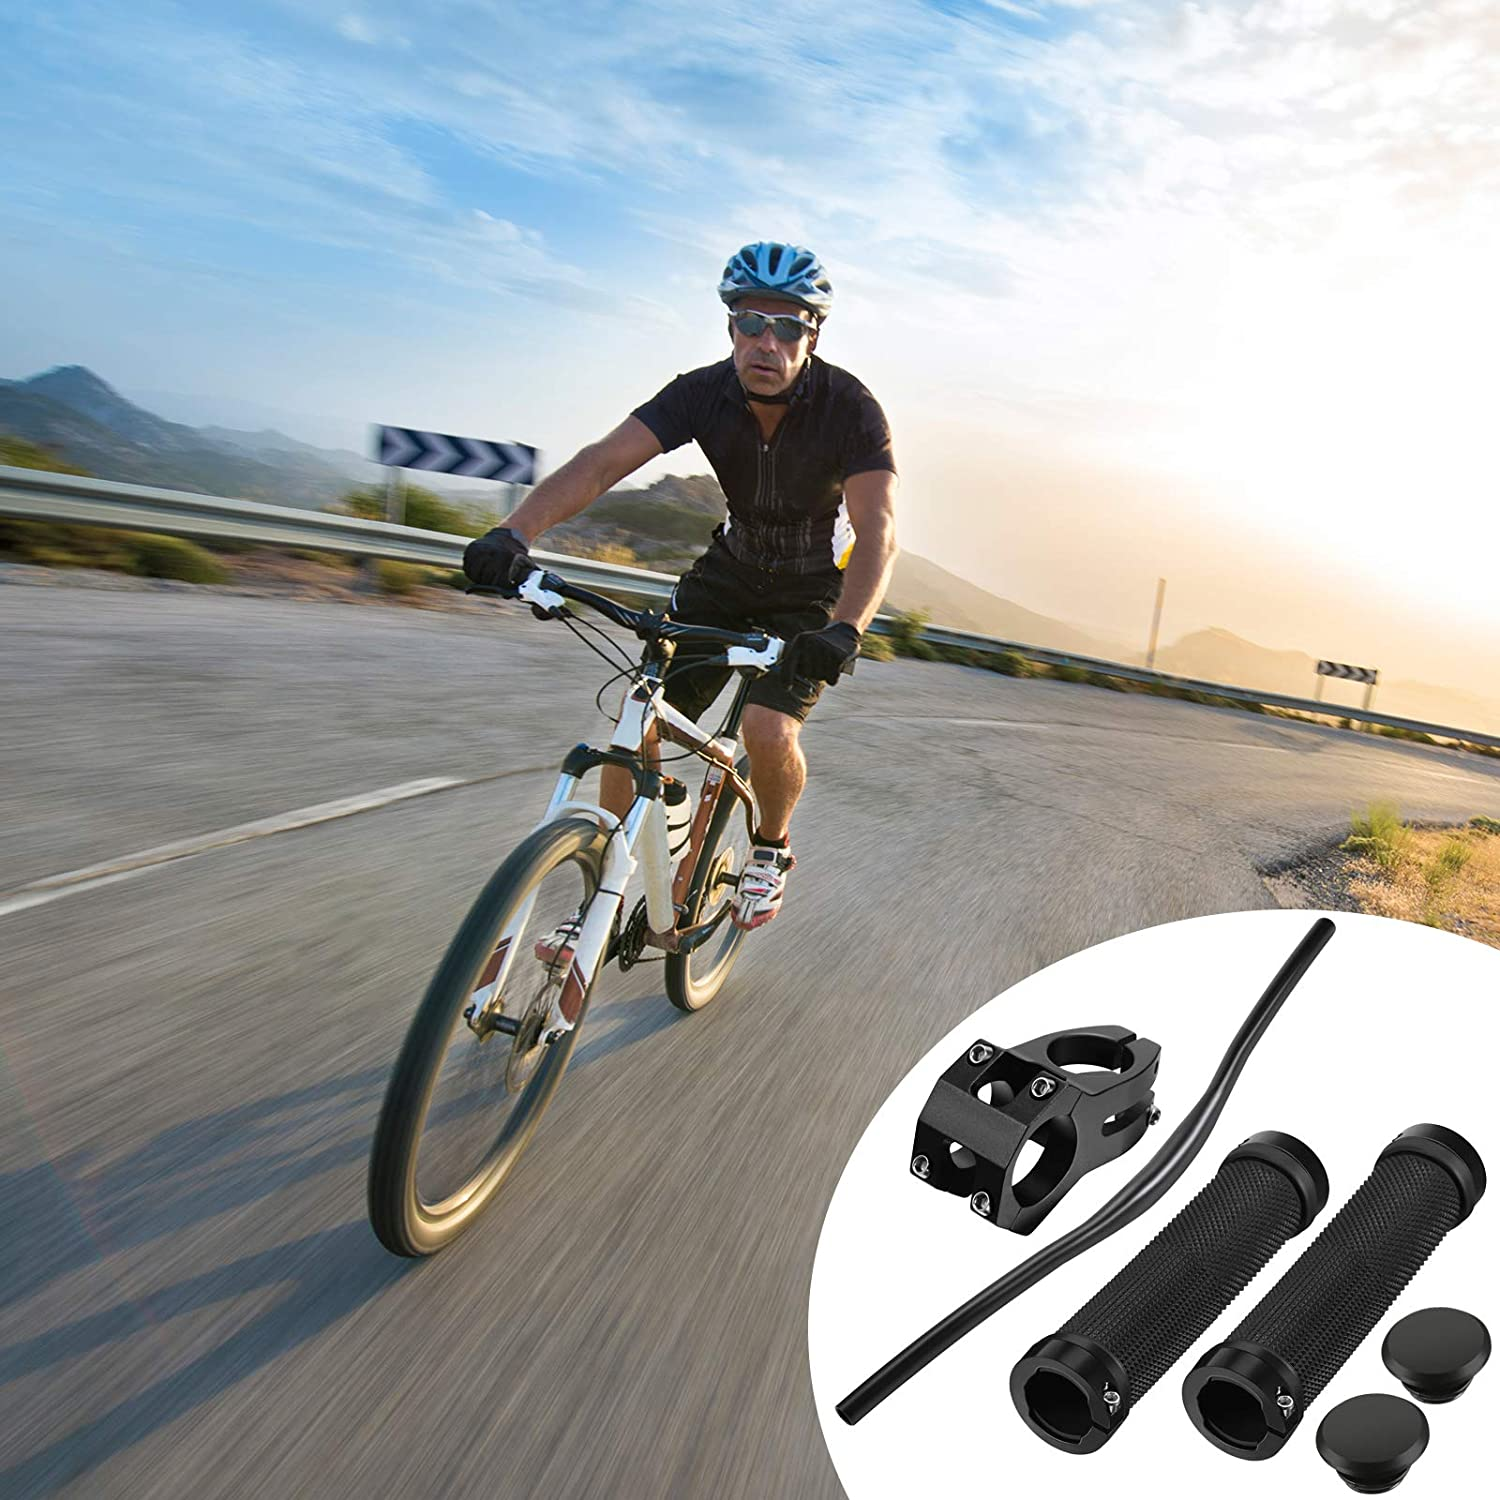 720 mm Aluminum Alloy Mountain Bike Handlebar with 31.8 Stem Mountain Bike Stem Short MTB Stem and Bike Handlebar Grips for Most Bicycles